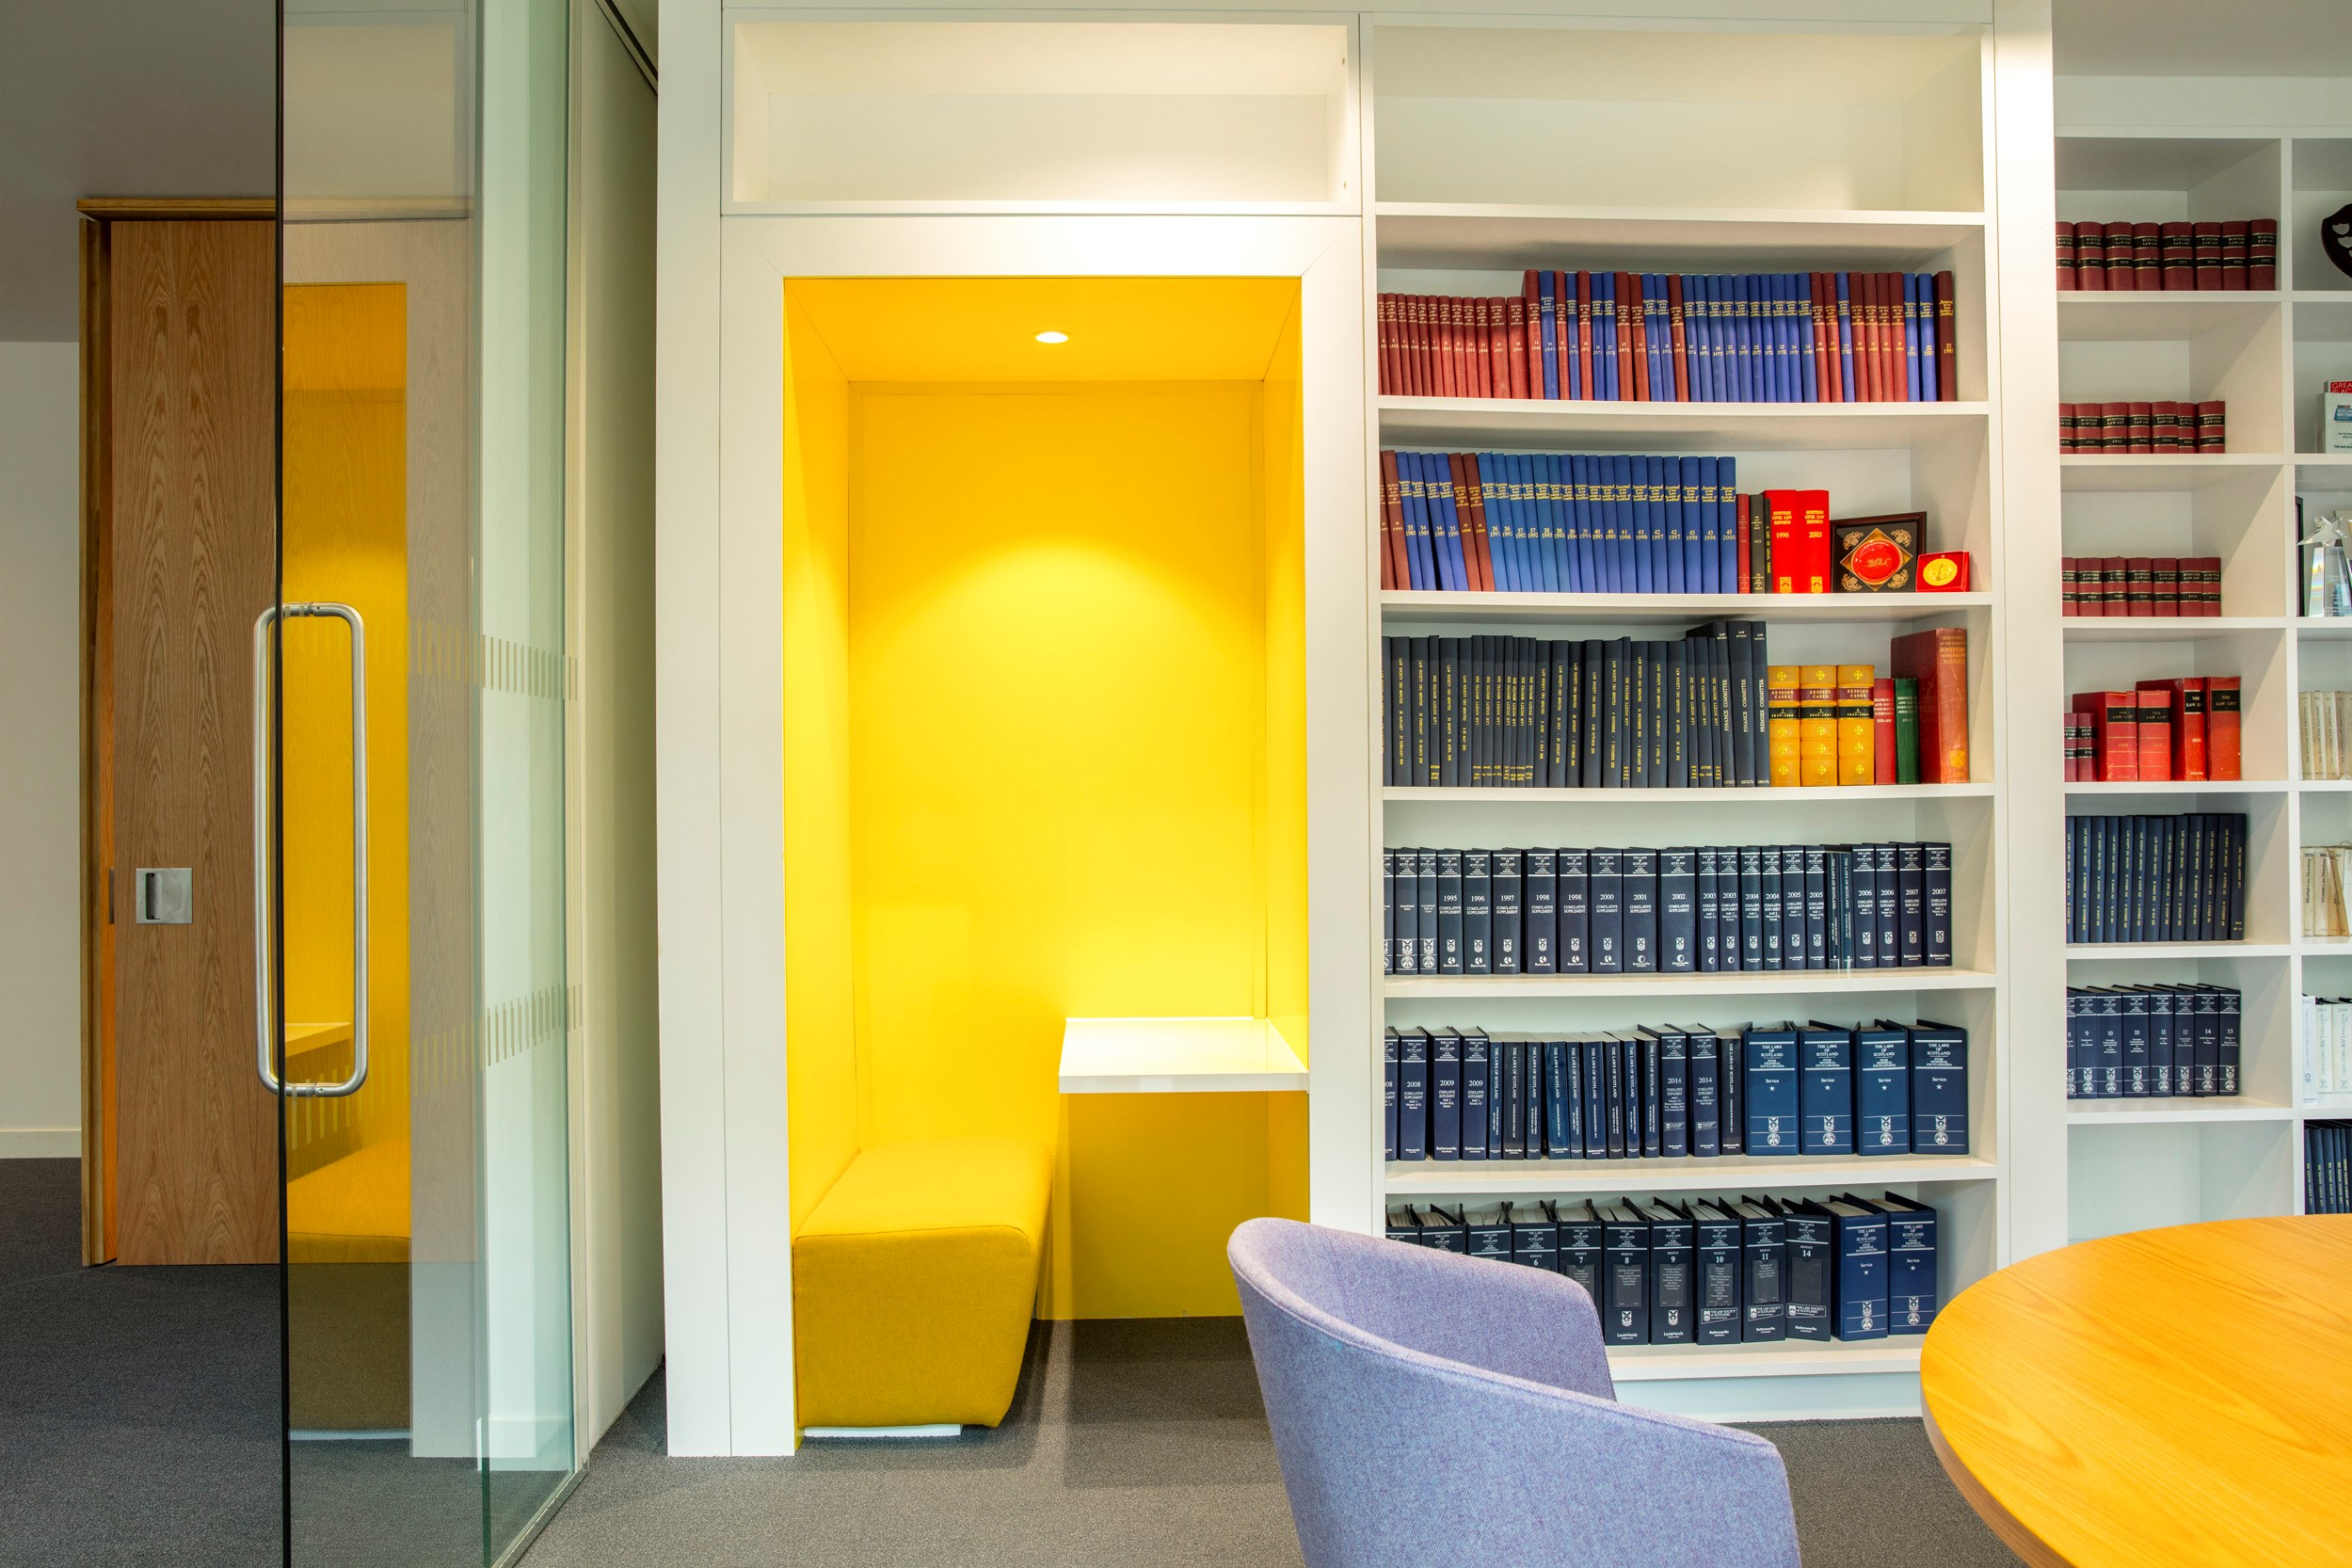 A meeting room with yellow booth and library books